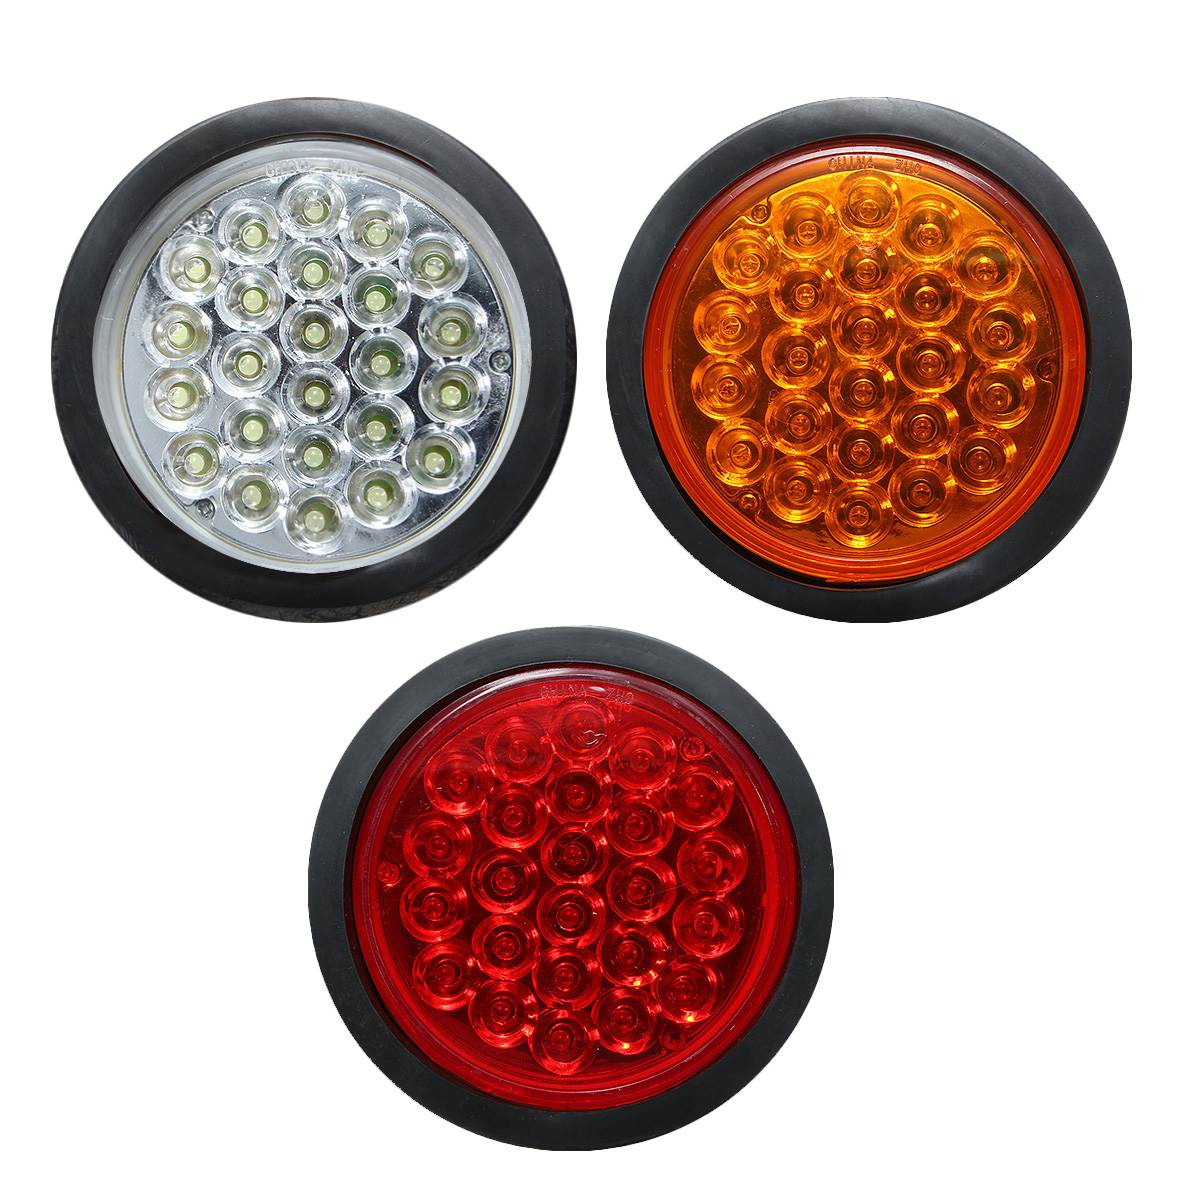 4 U0026quot  Inch Amber 24 Led Round Stop  Turn  Tail Truck Trailer